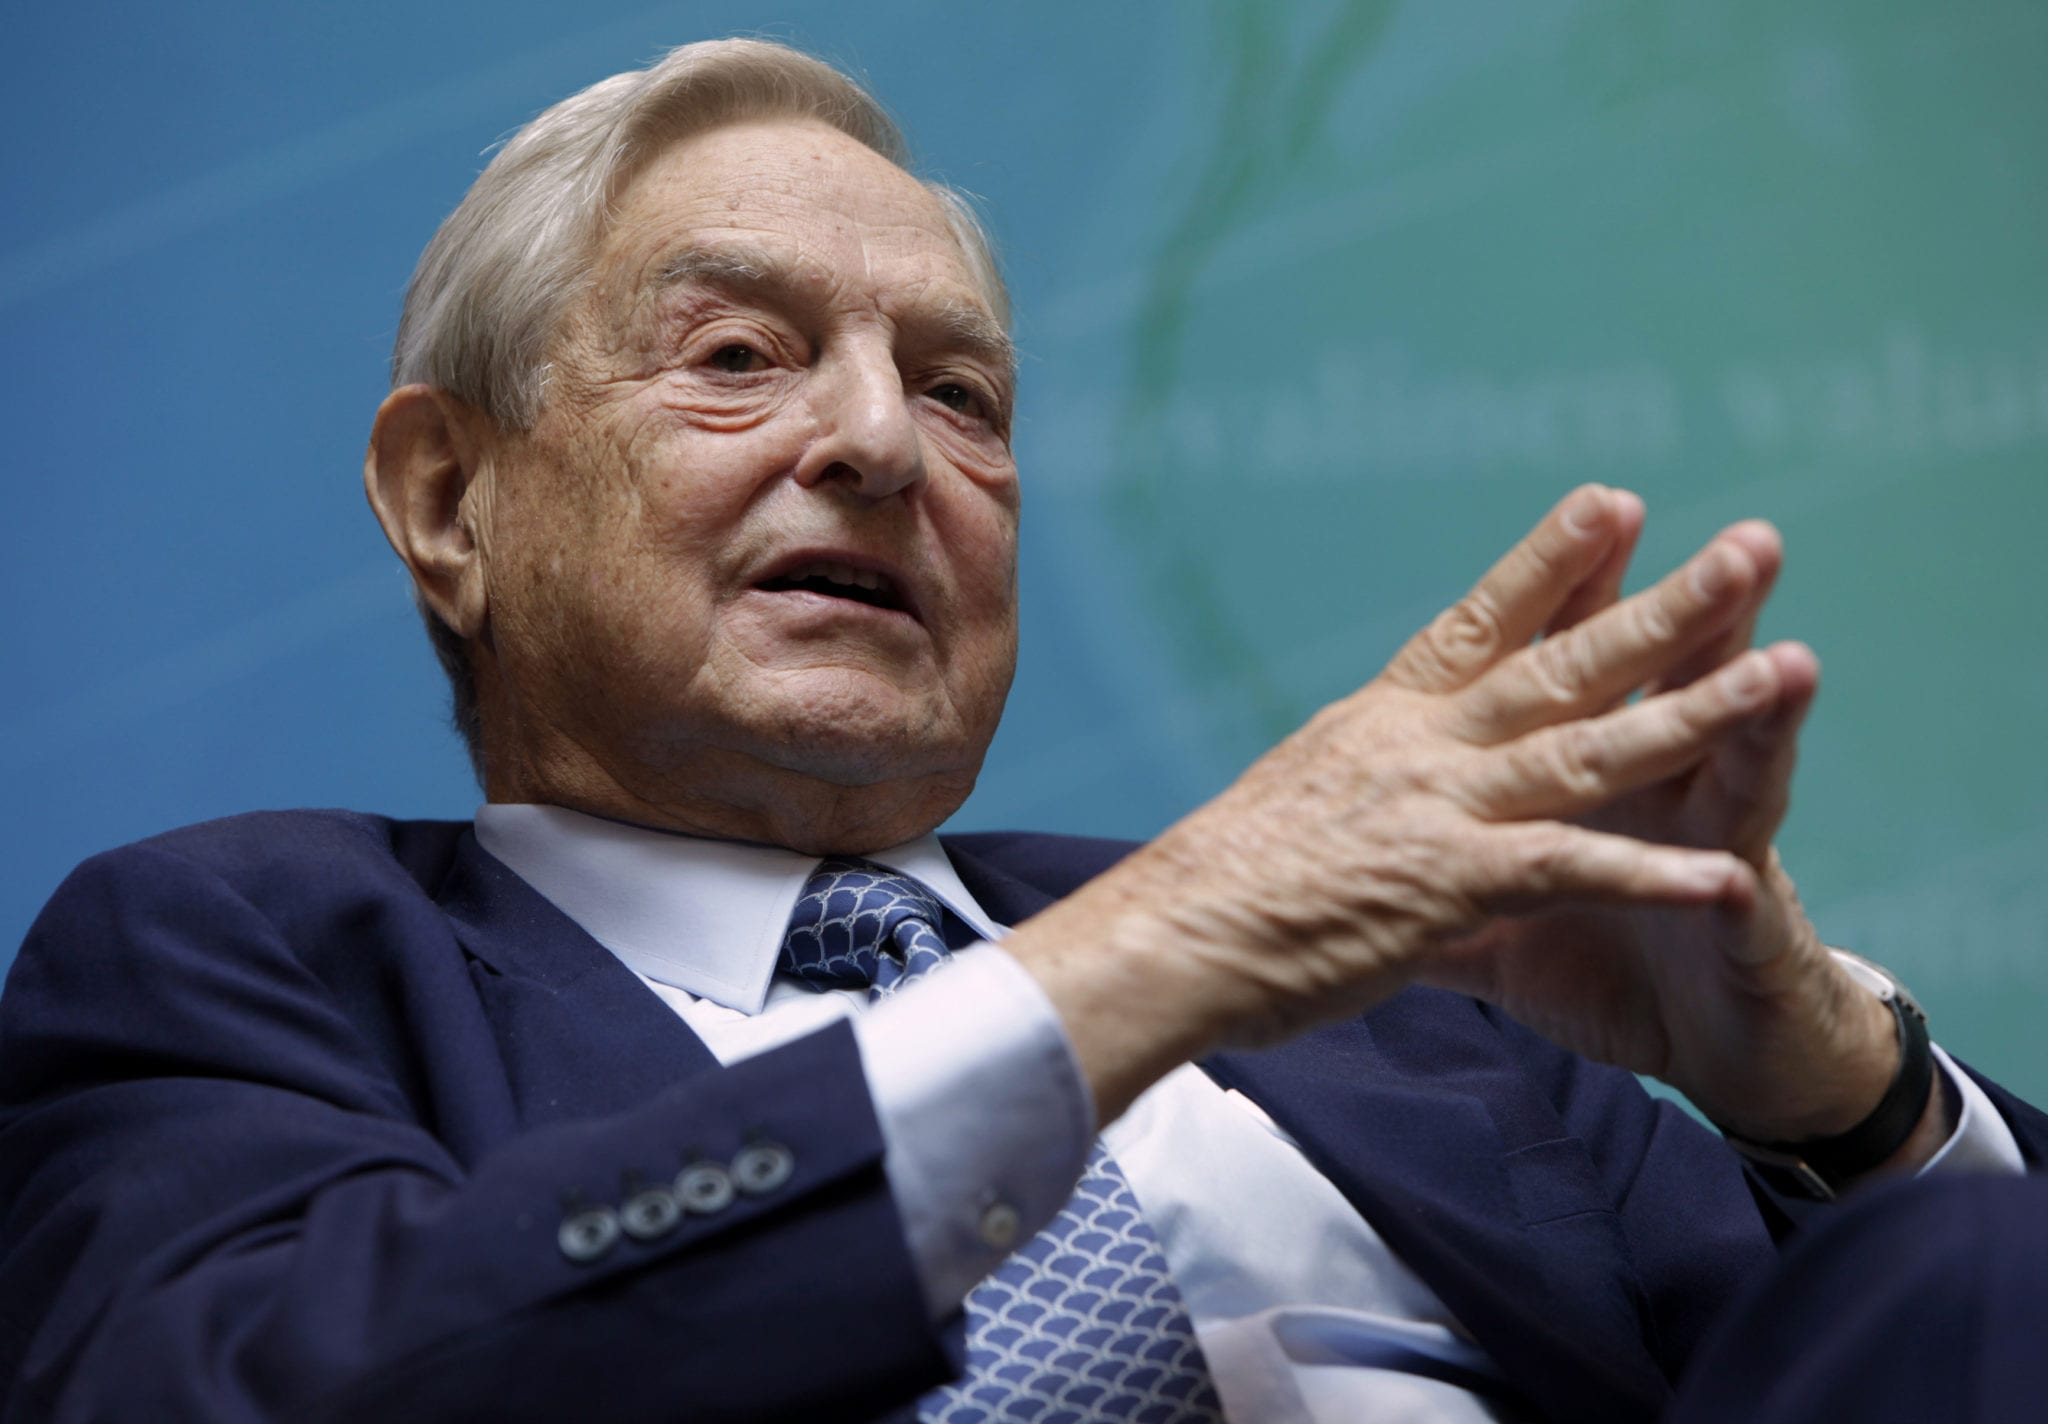 GEORGE SOROS WILL DUMP $500 MILLION Into Obama's Plan To Flood America With Muslim Refugees Vetted By UN